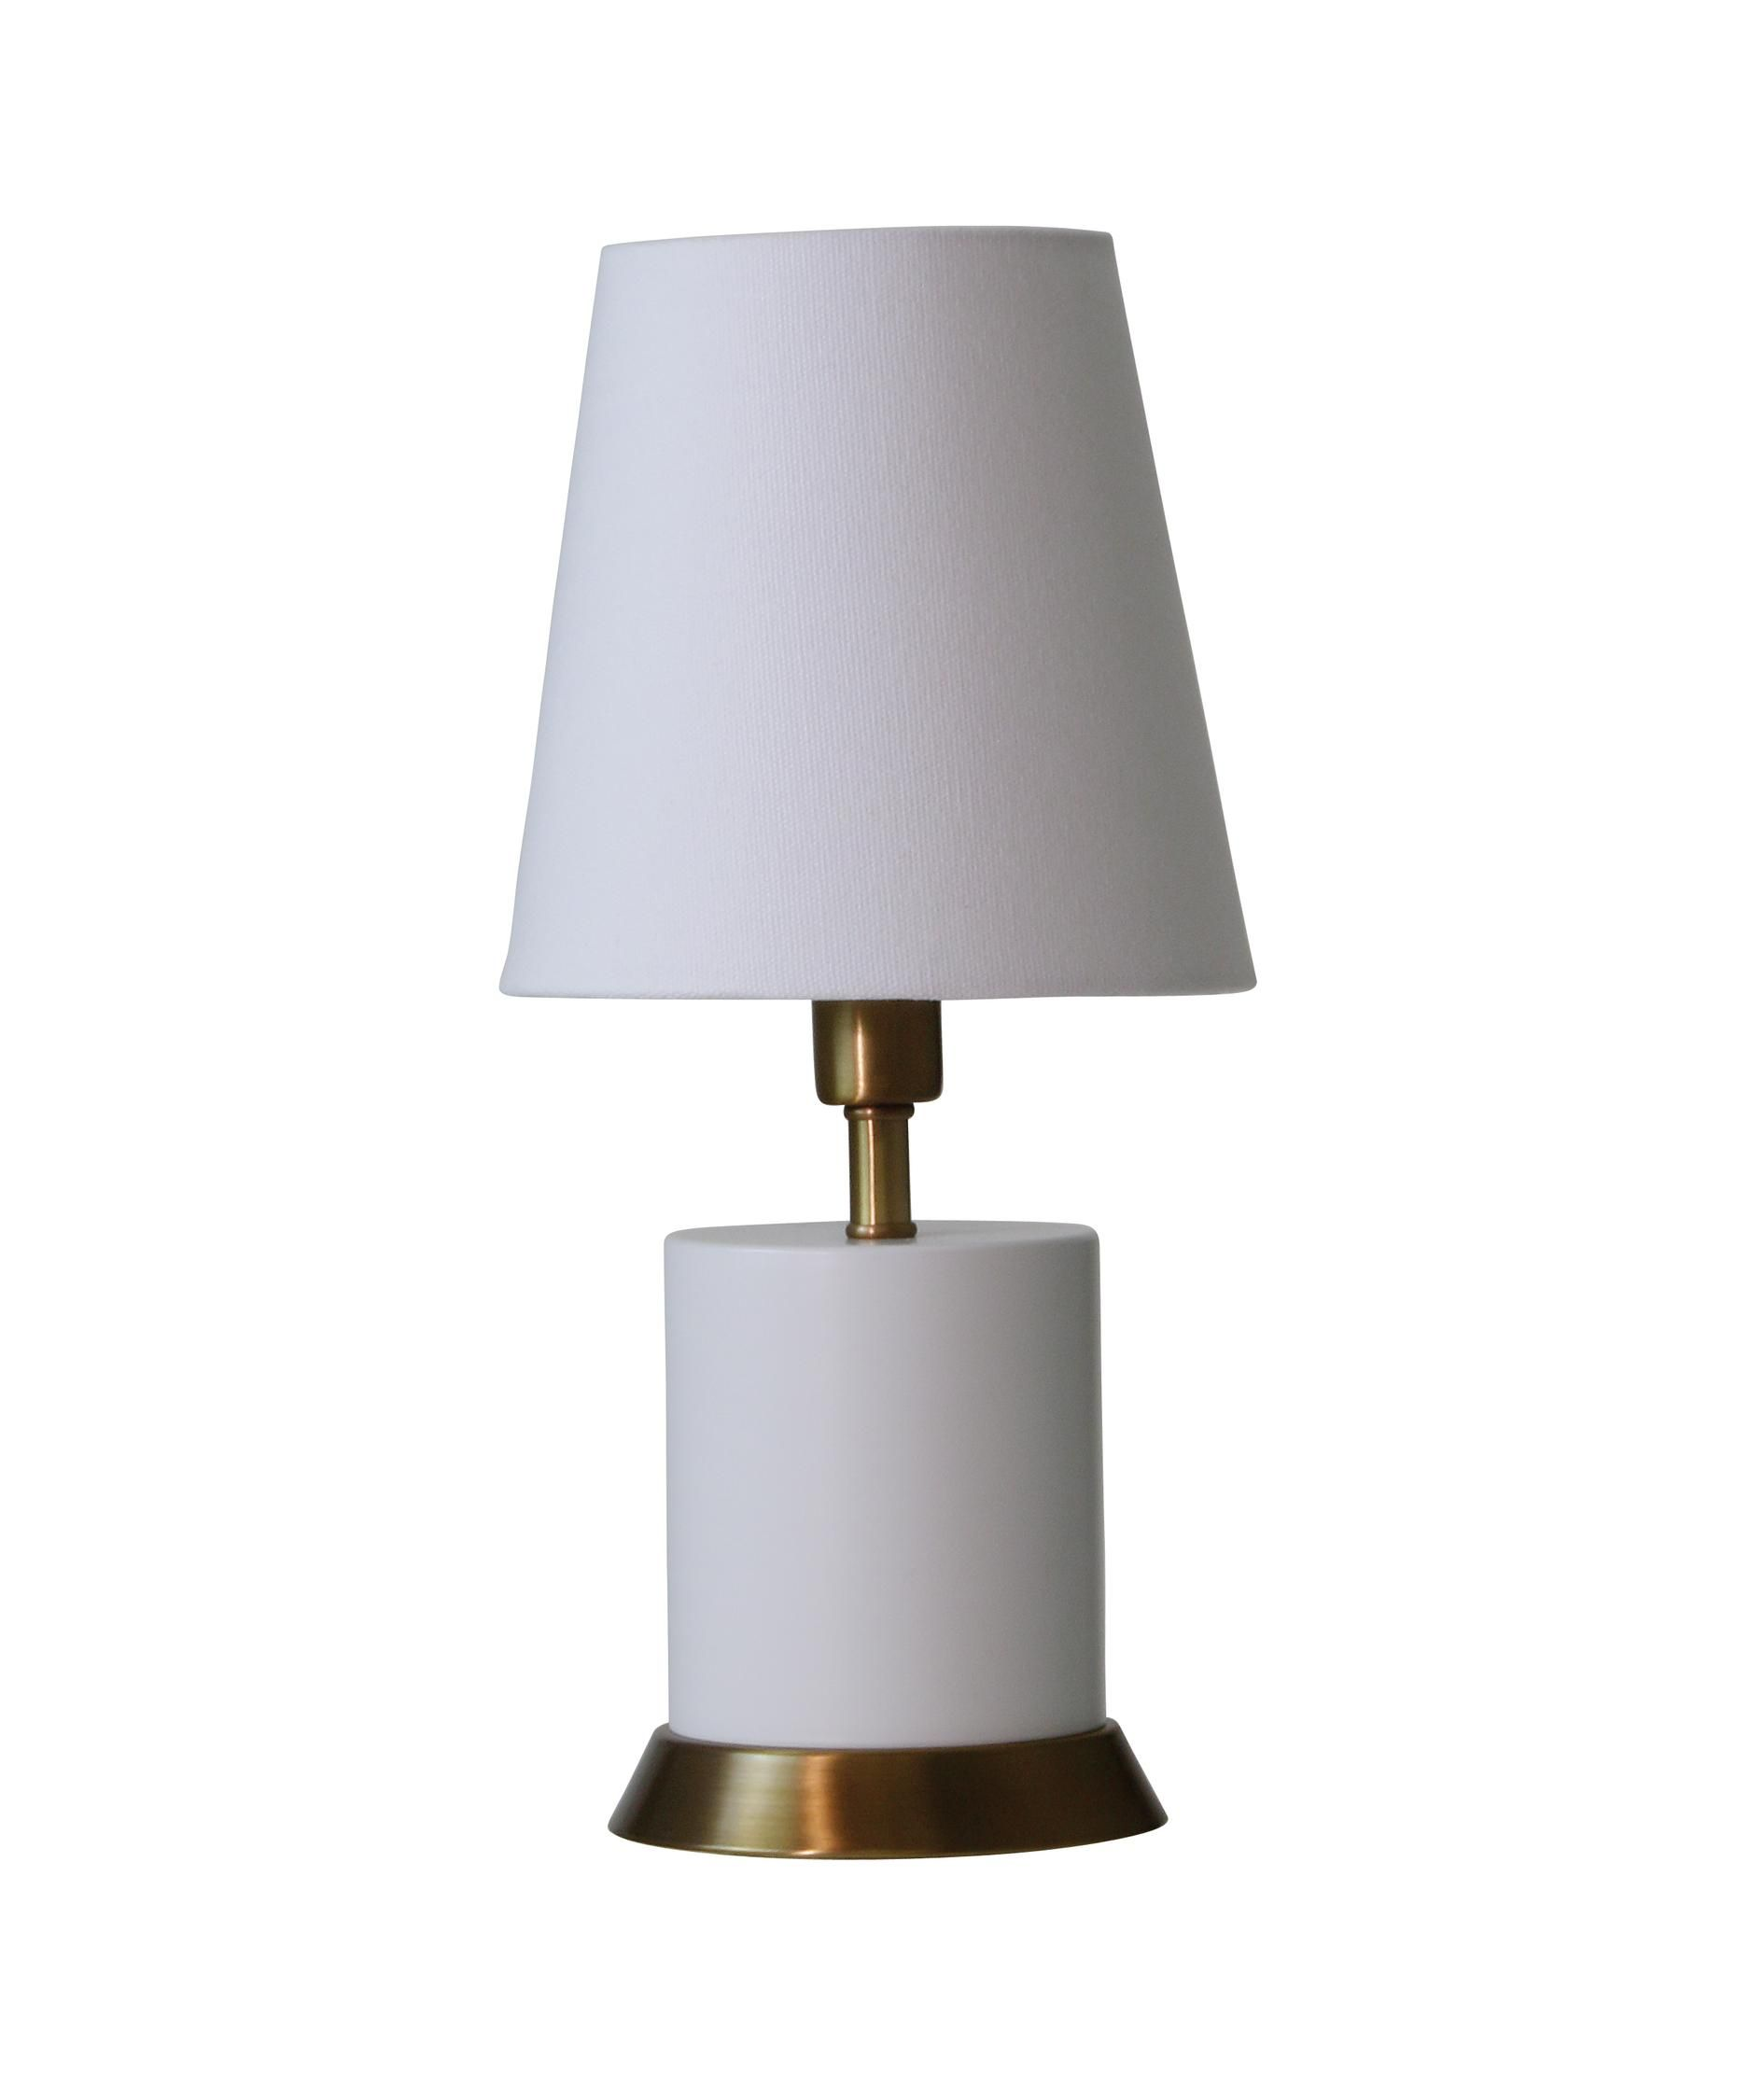 Geo 12 Inch Accent Lamp Capitol Lighting House Of Troy Accent Lamp Lamp